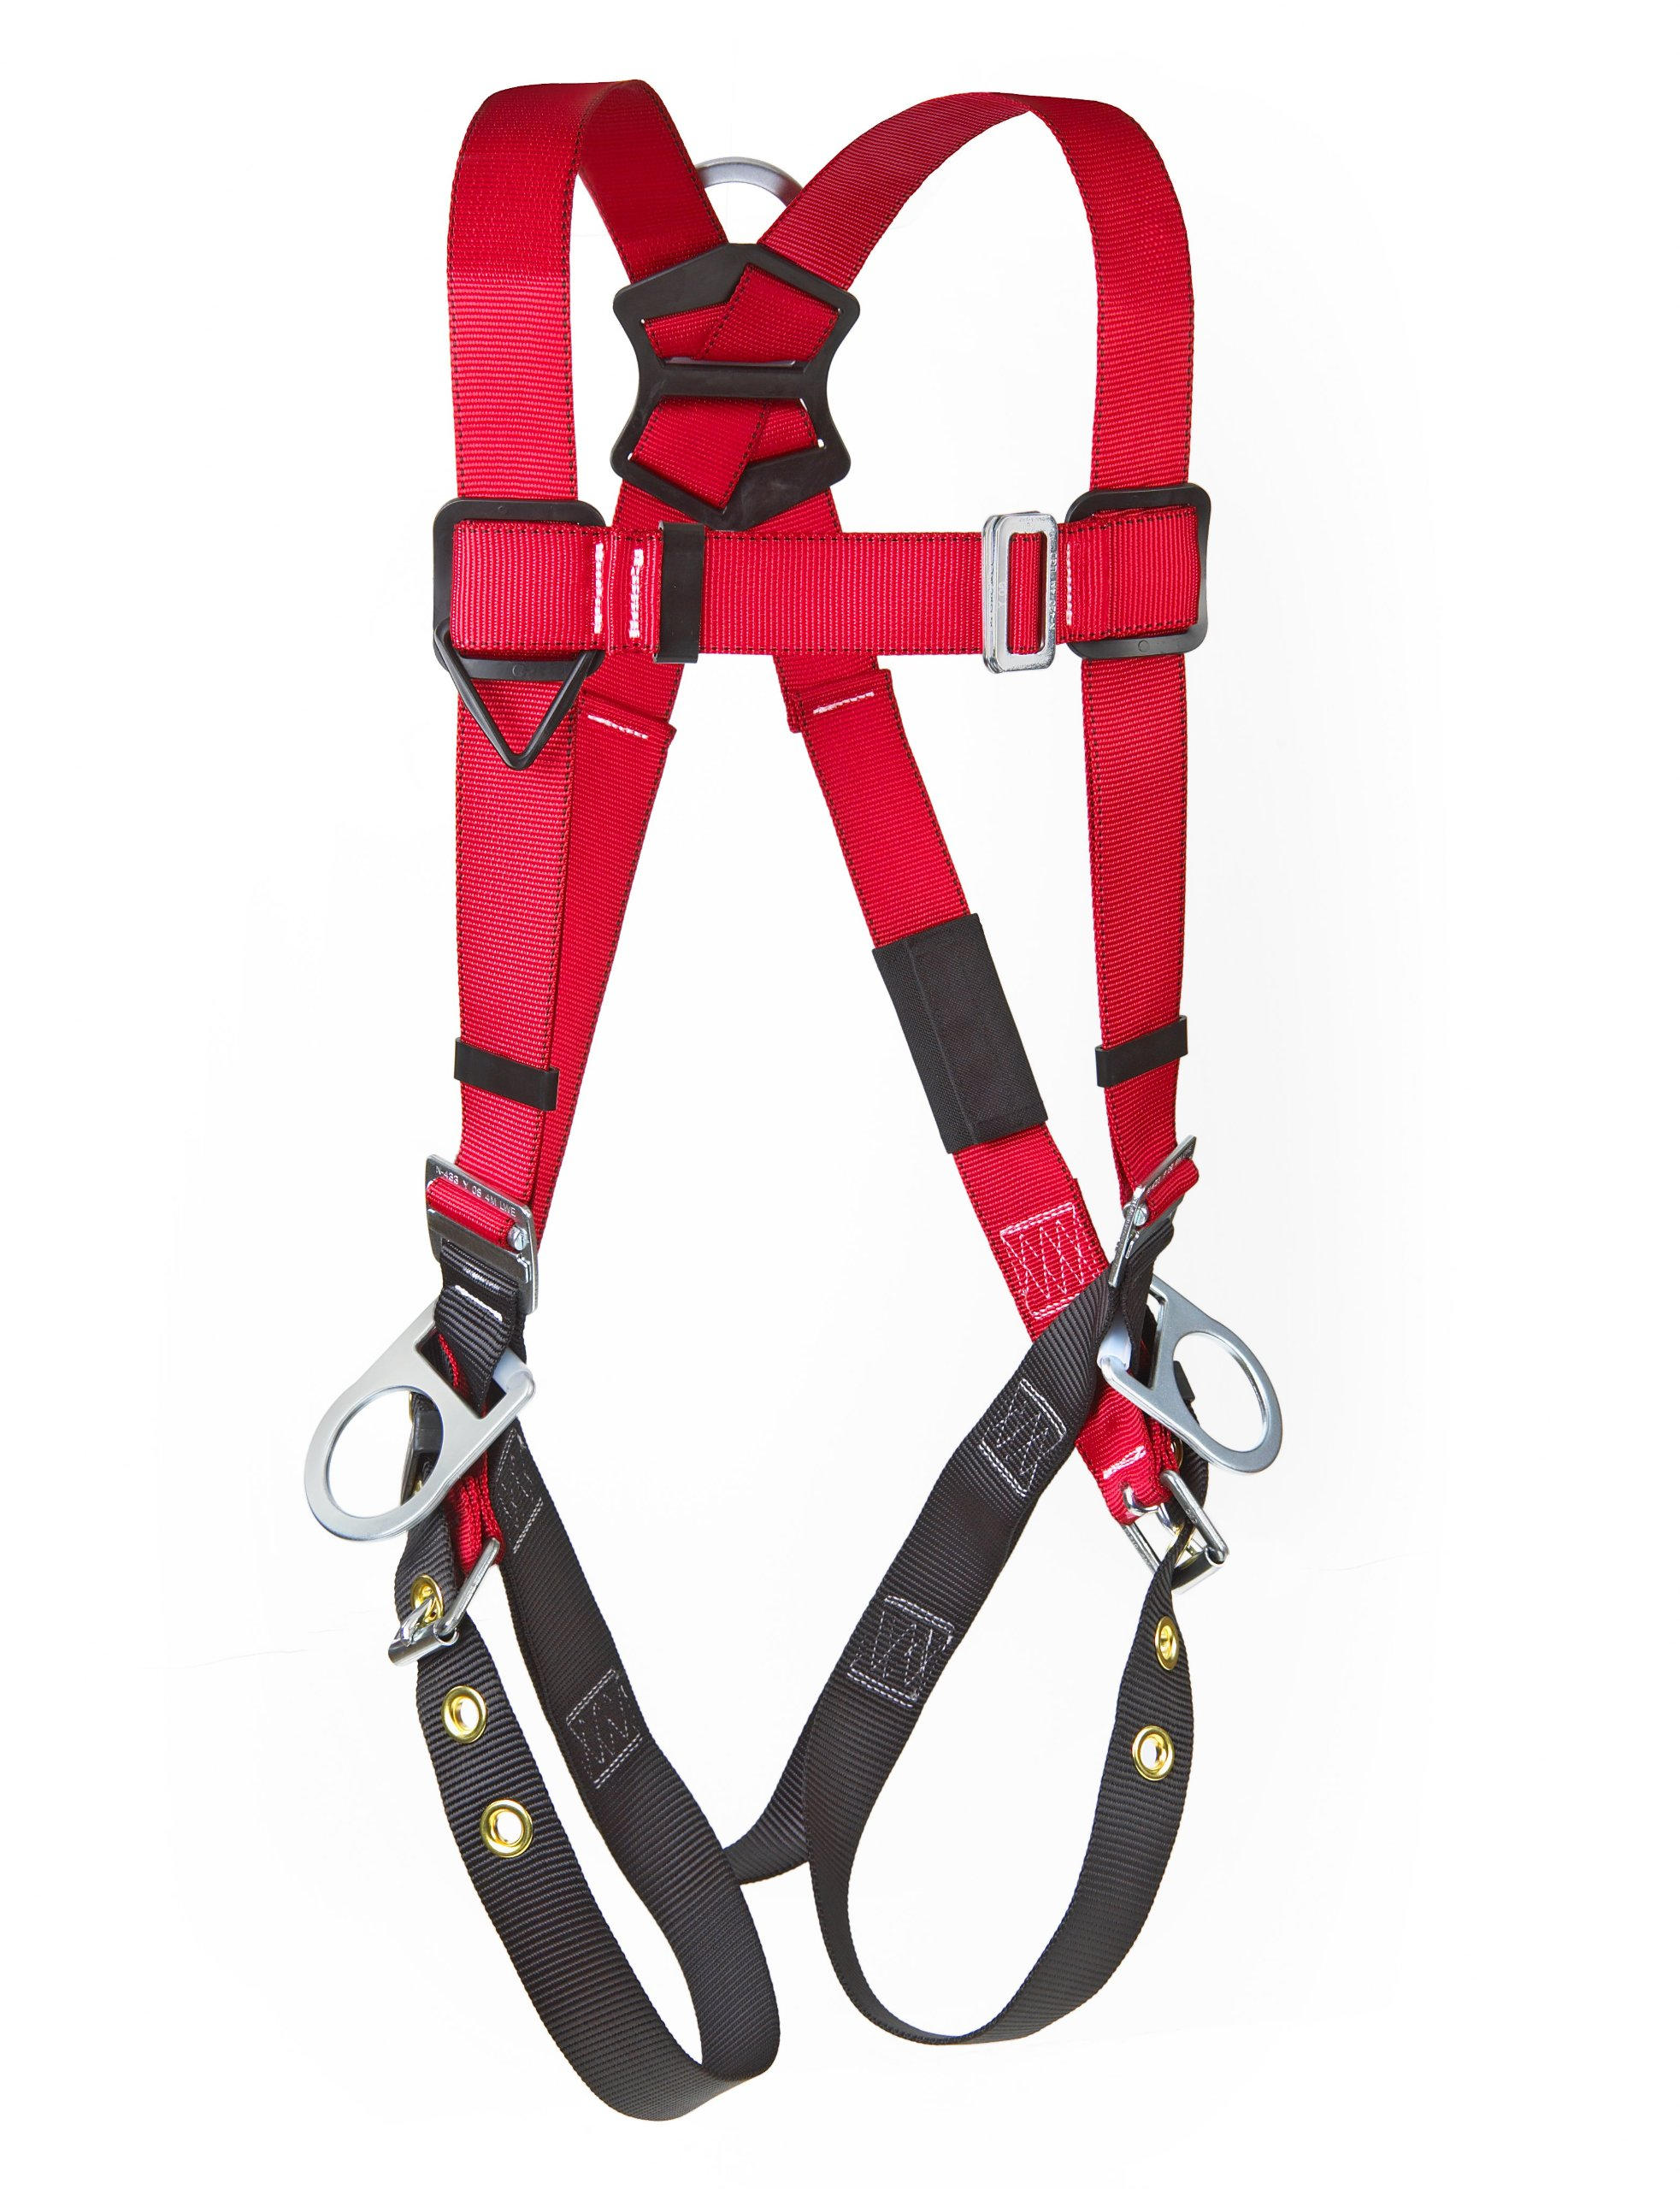 3M Protecta PRO 1191246 Fall Protection Full Body Harness, Back and Side D-Rings, Tongue Buckle Legs, 420  lb. Capacity, Medium/Large, Red/Black,